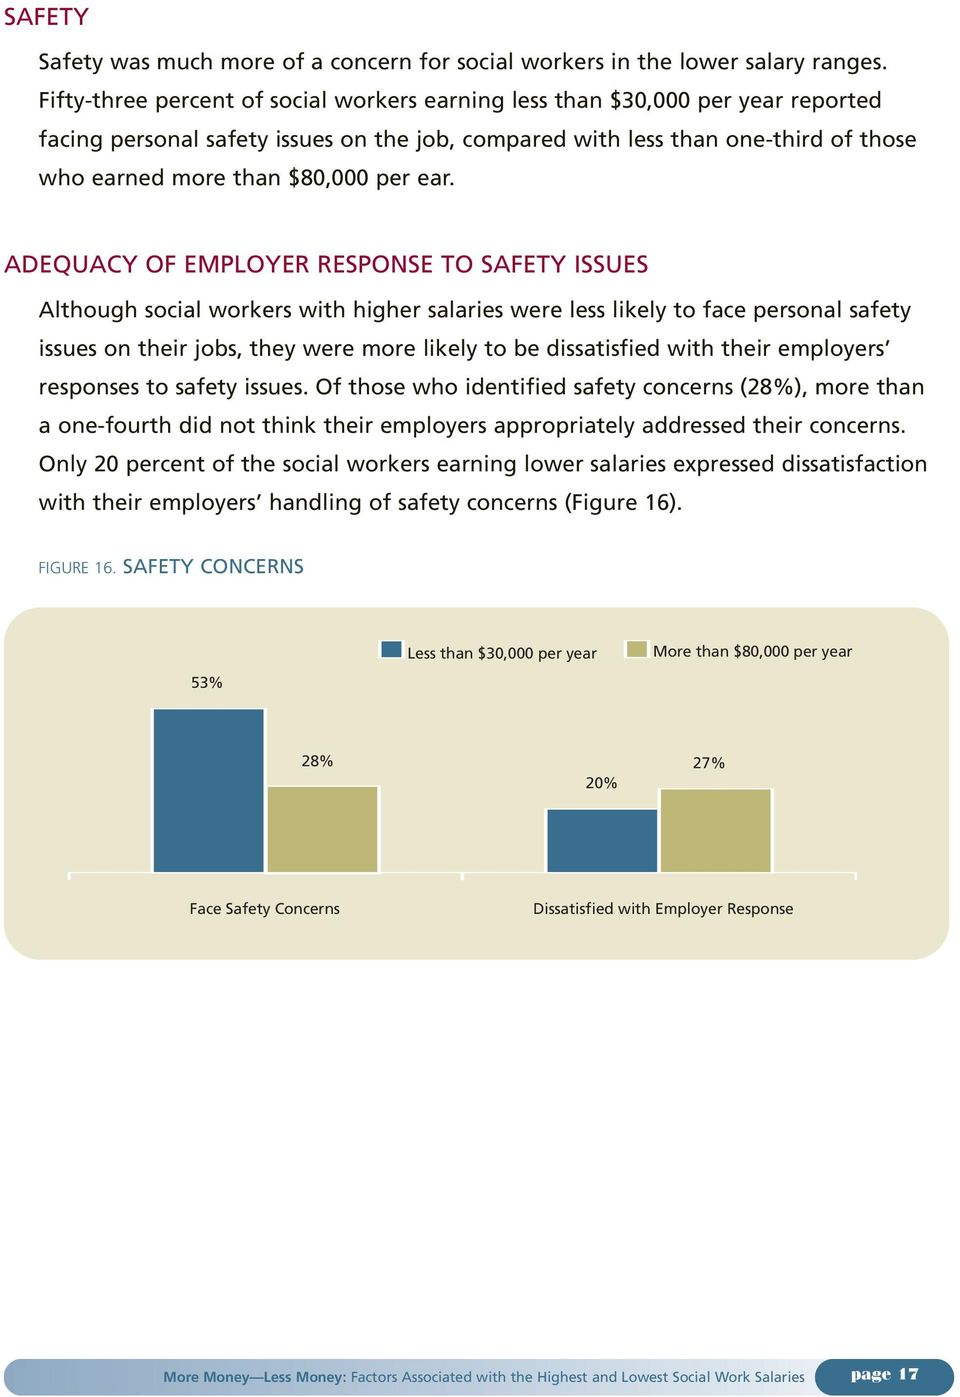 ear. ADEQUACY OF EMPLOYER RESPONSE TO SAFETY ISSUES Although social workers with higher salaries were less likely to face personal safety issues on their jobs, they were more likely to be